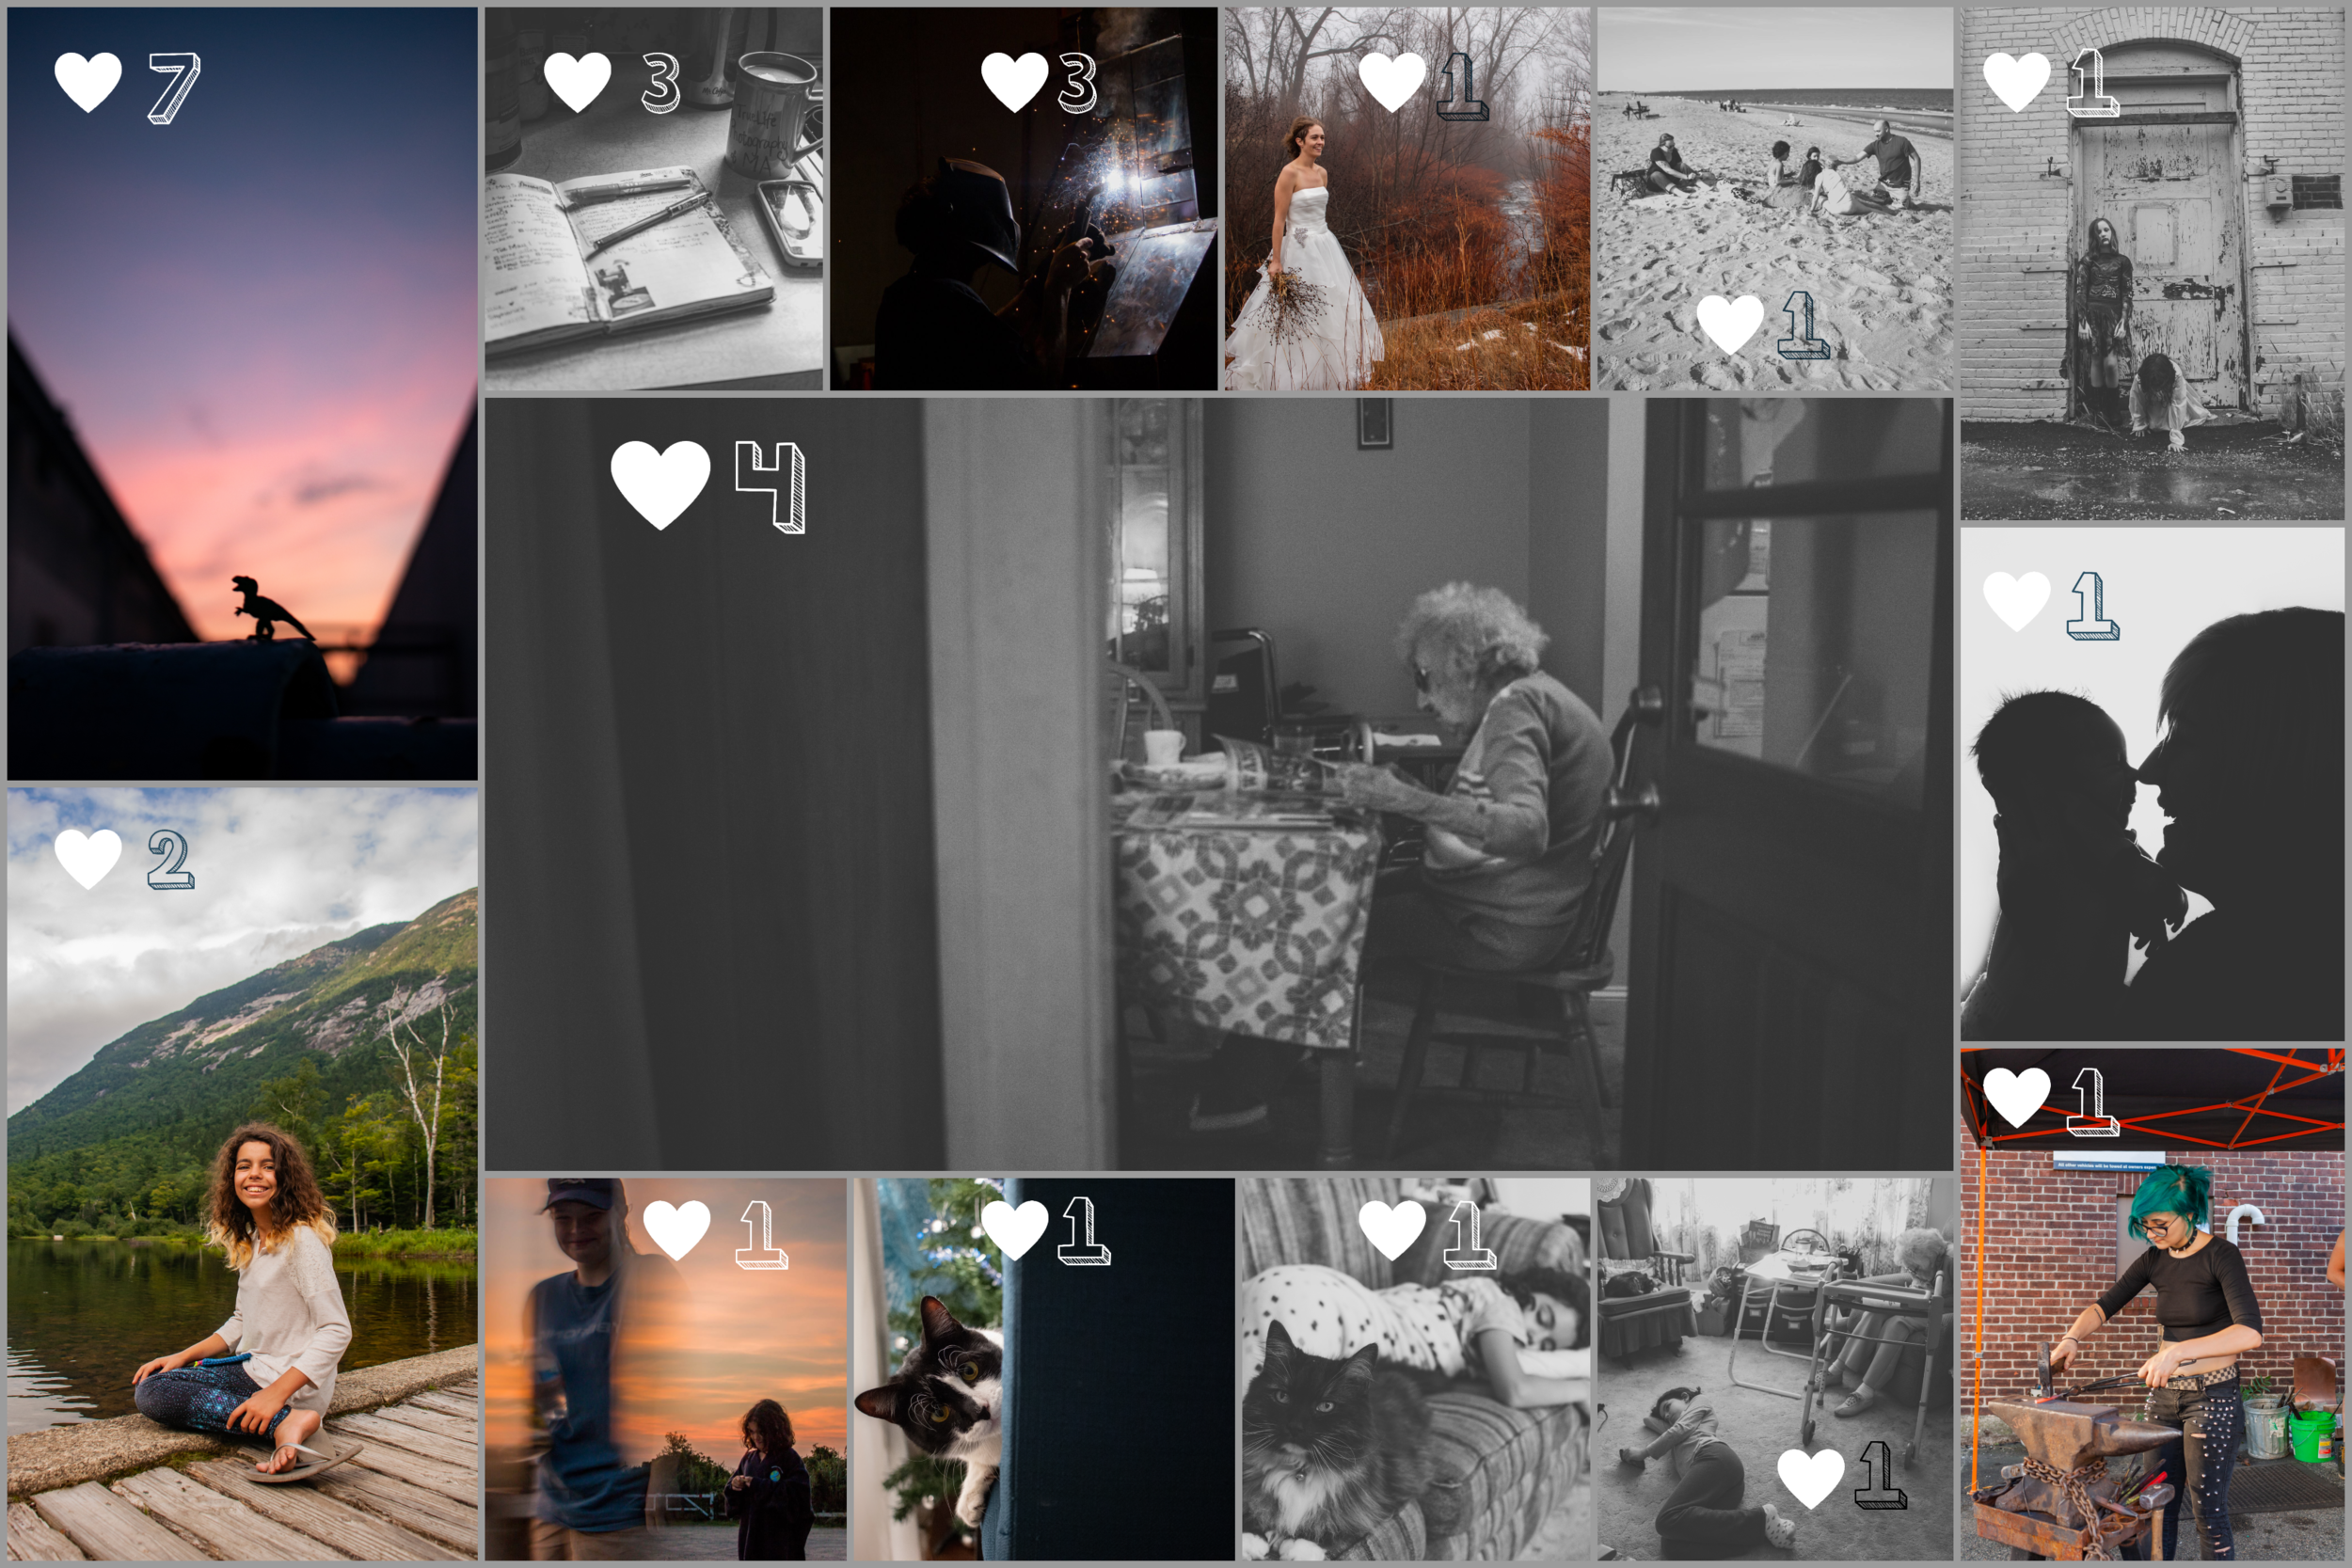 All my images that were favorited.